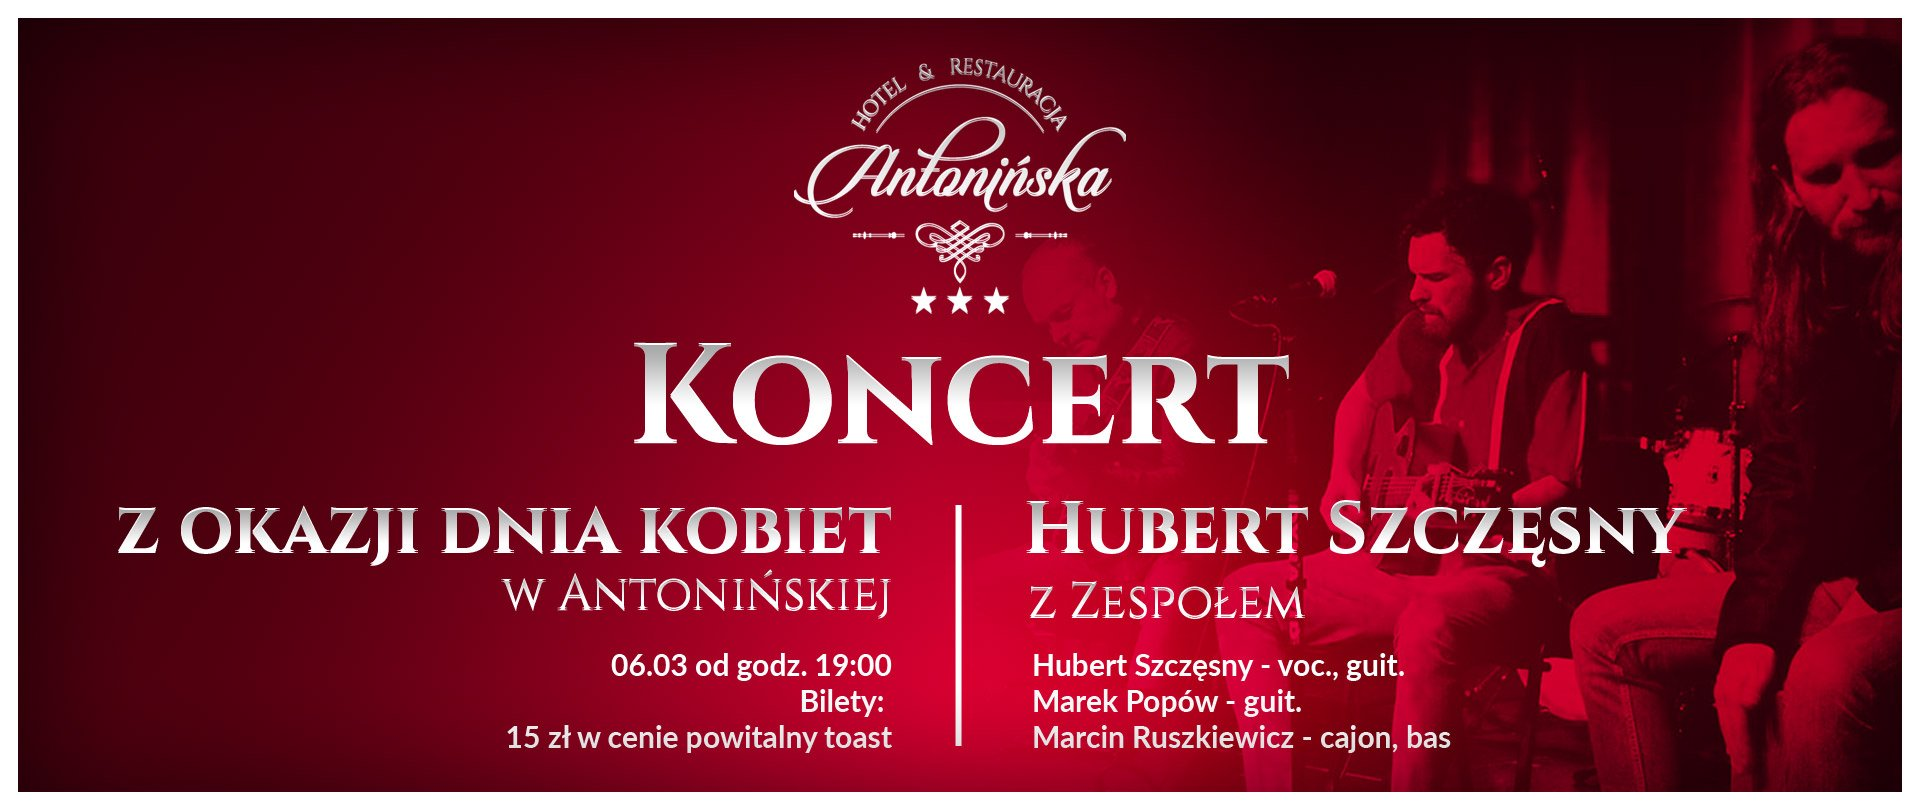 International Women's Day Concert - Hubert Szczęsny with band